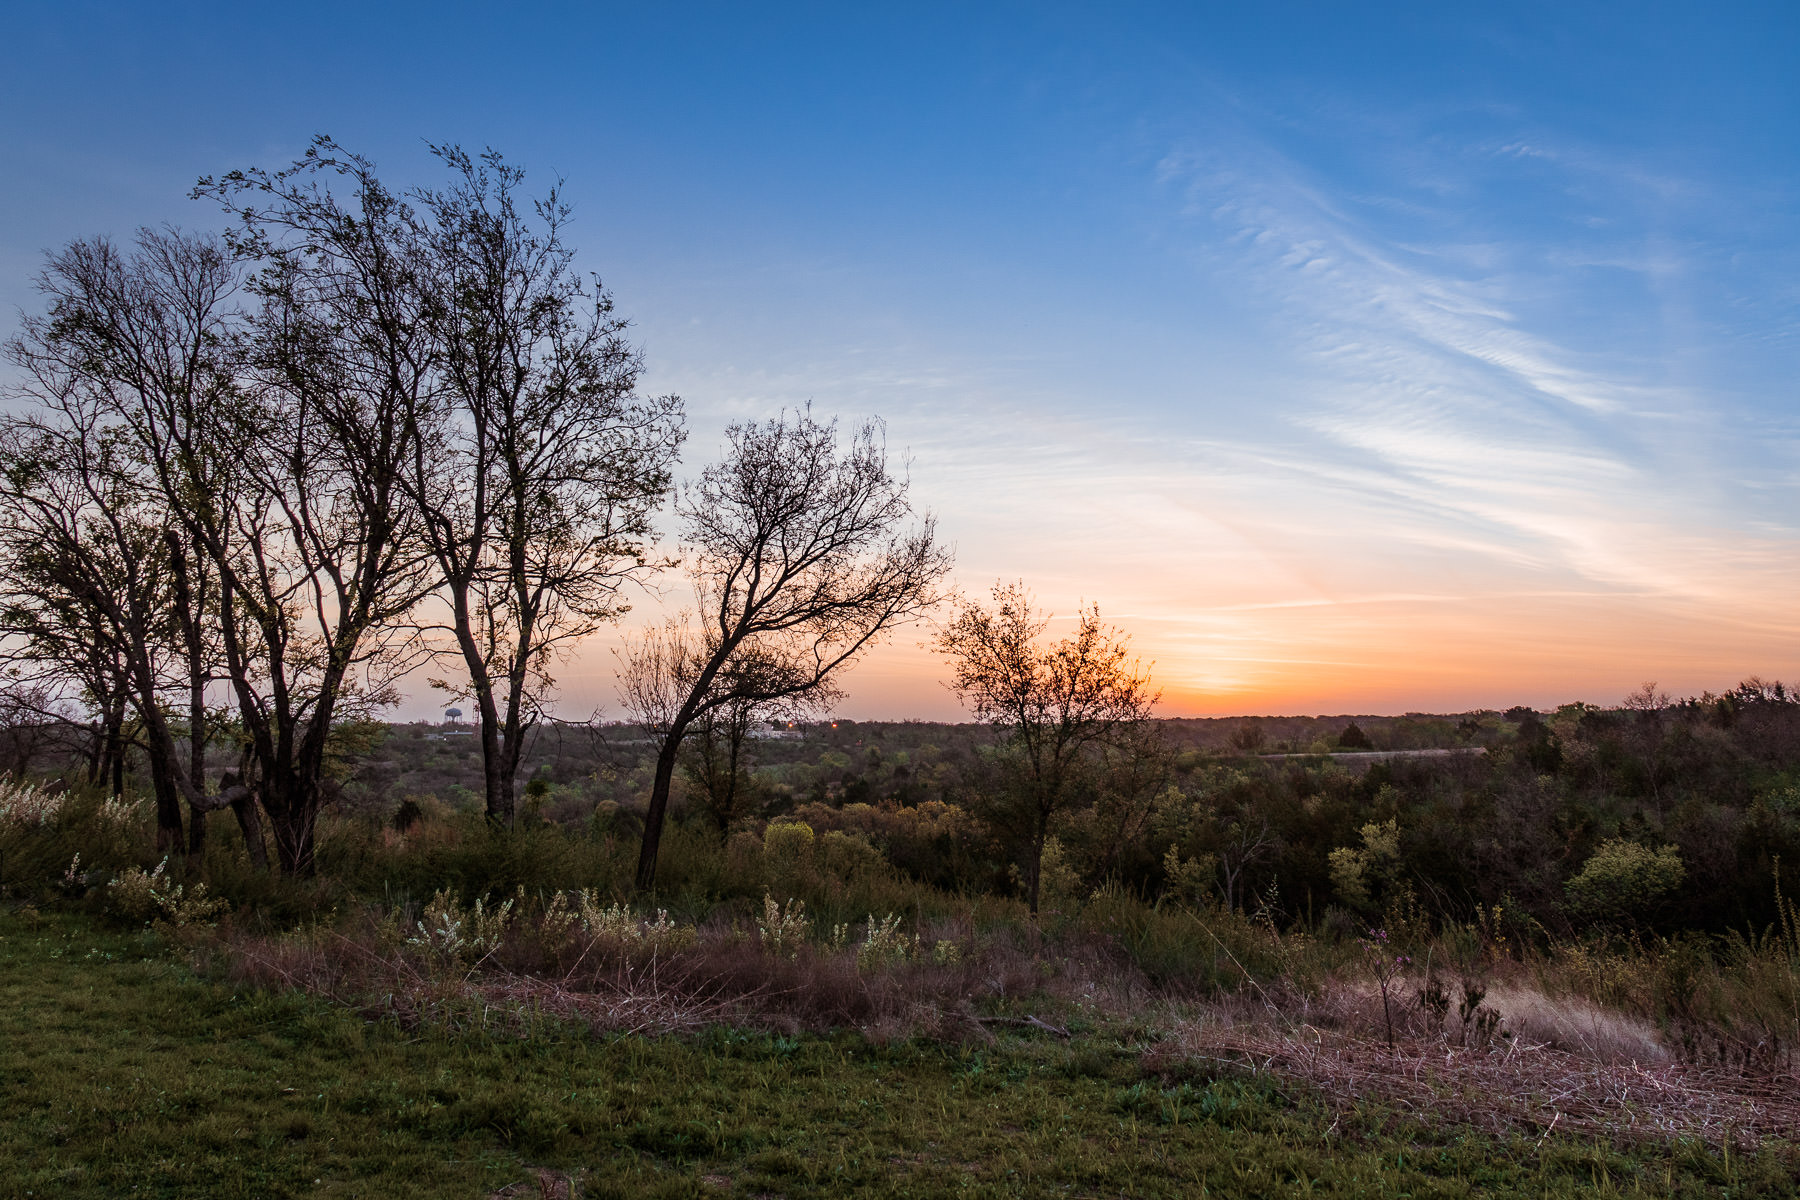 The sun rises on Fort Worth, Texas, as seen from the Tandy Hills Natural Area.